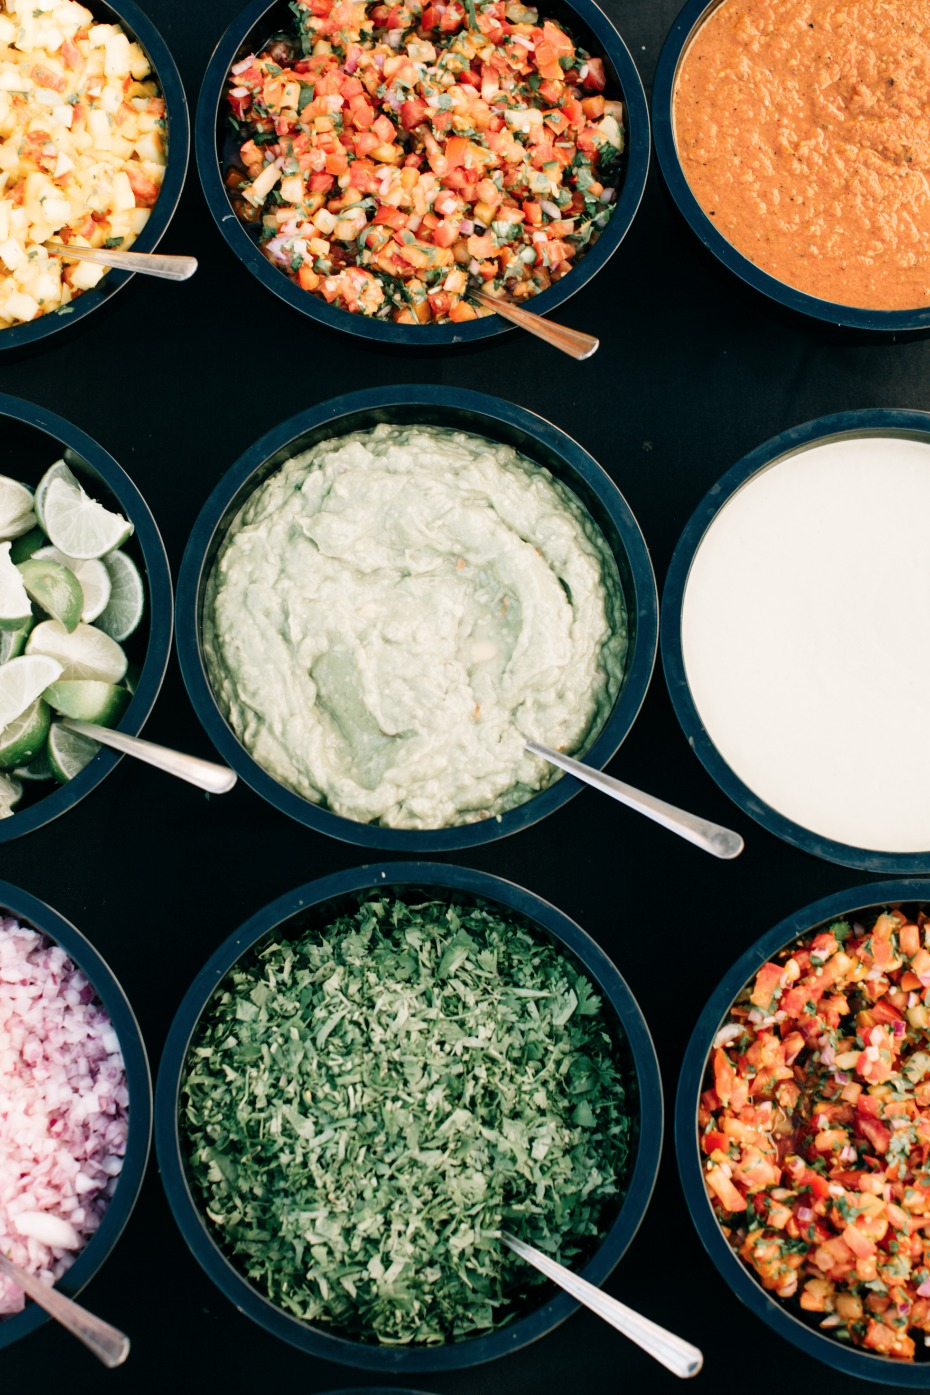 Wedding Reception idea - homemade salsa bar for taco bar at wedding